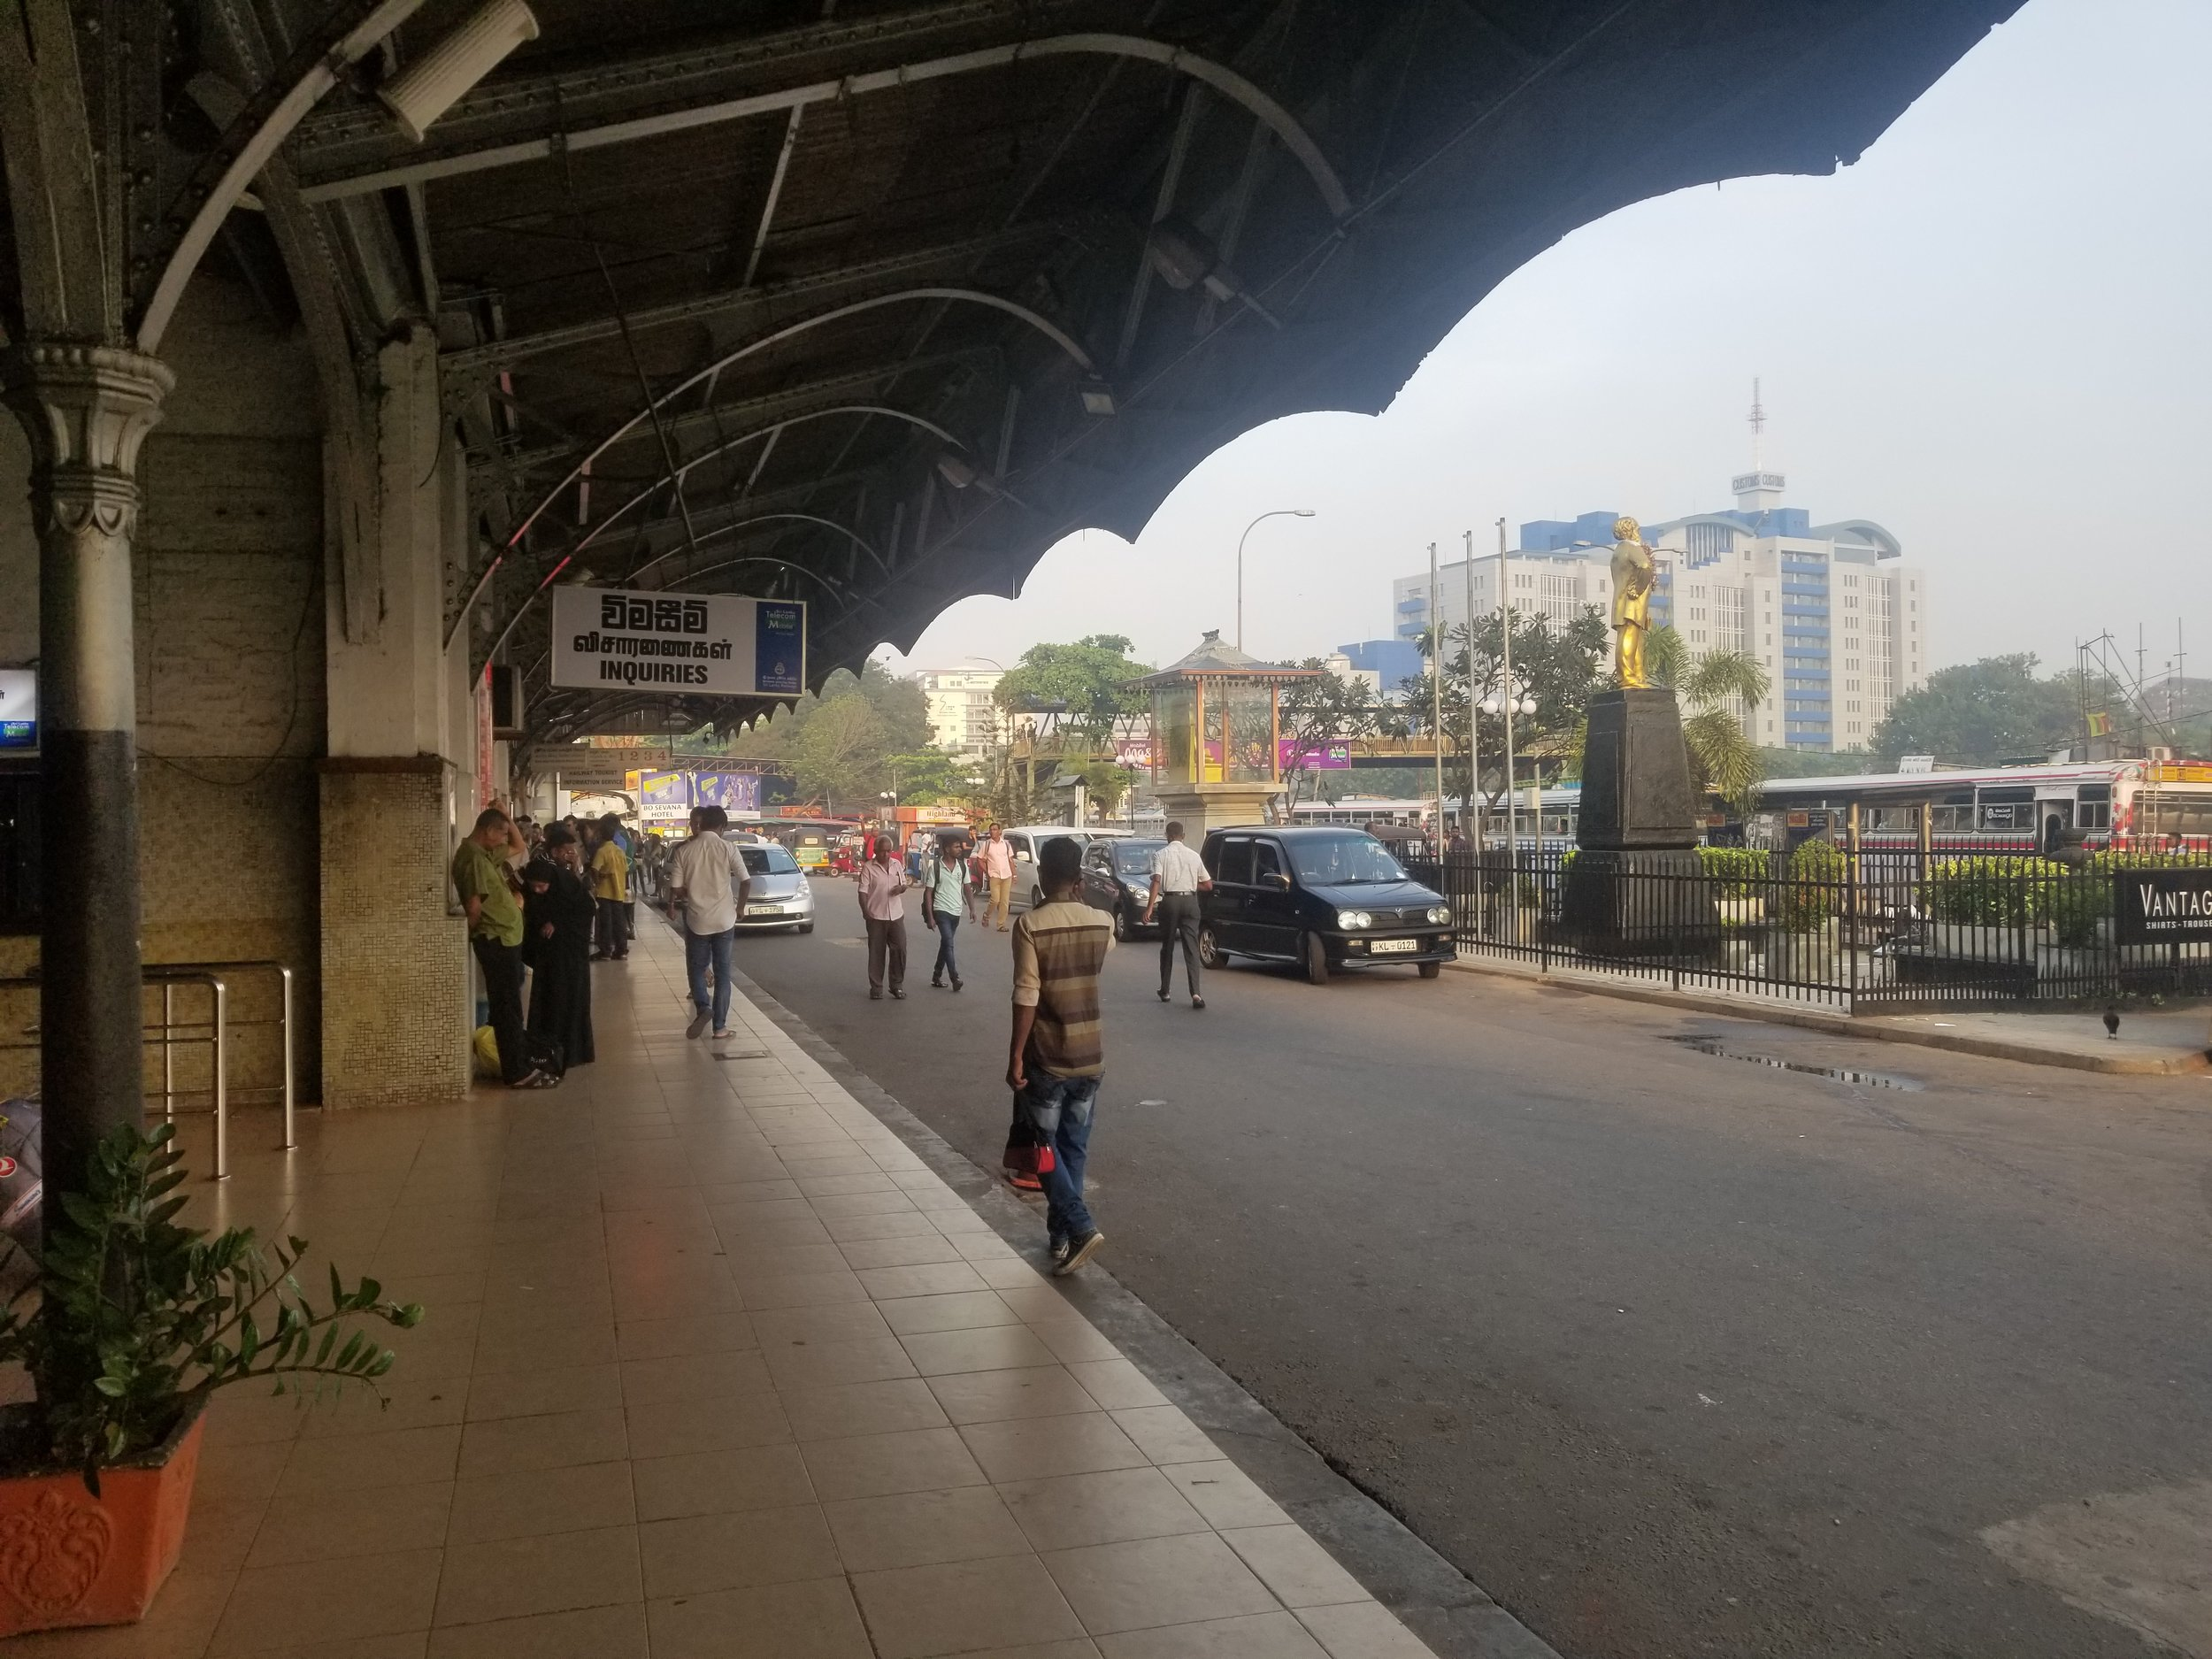 Fort Train Station - Colombo